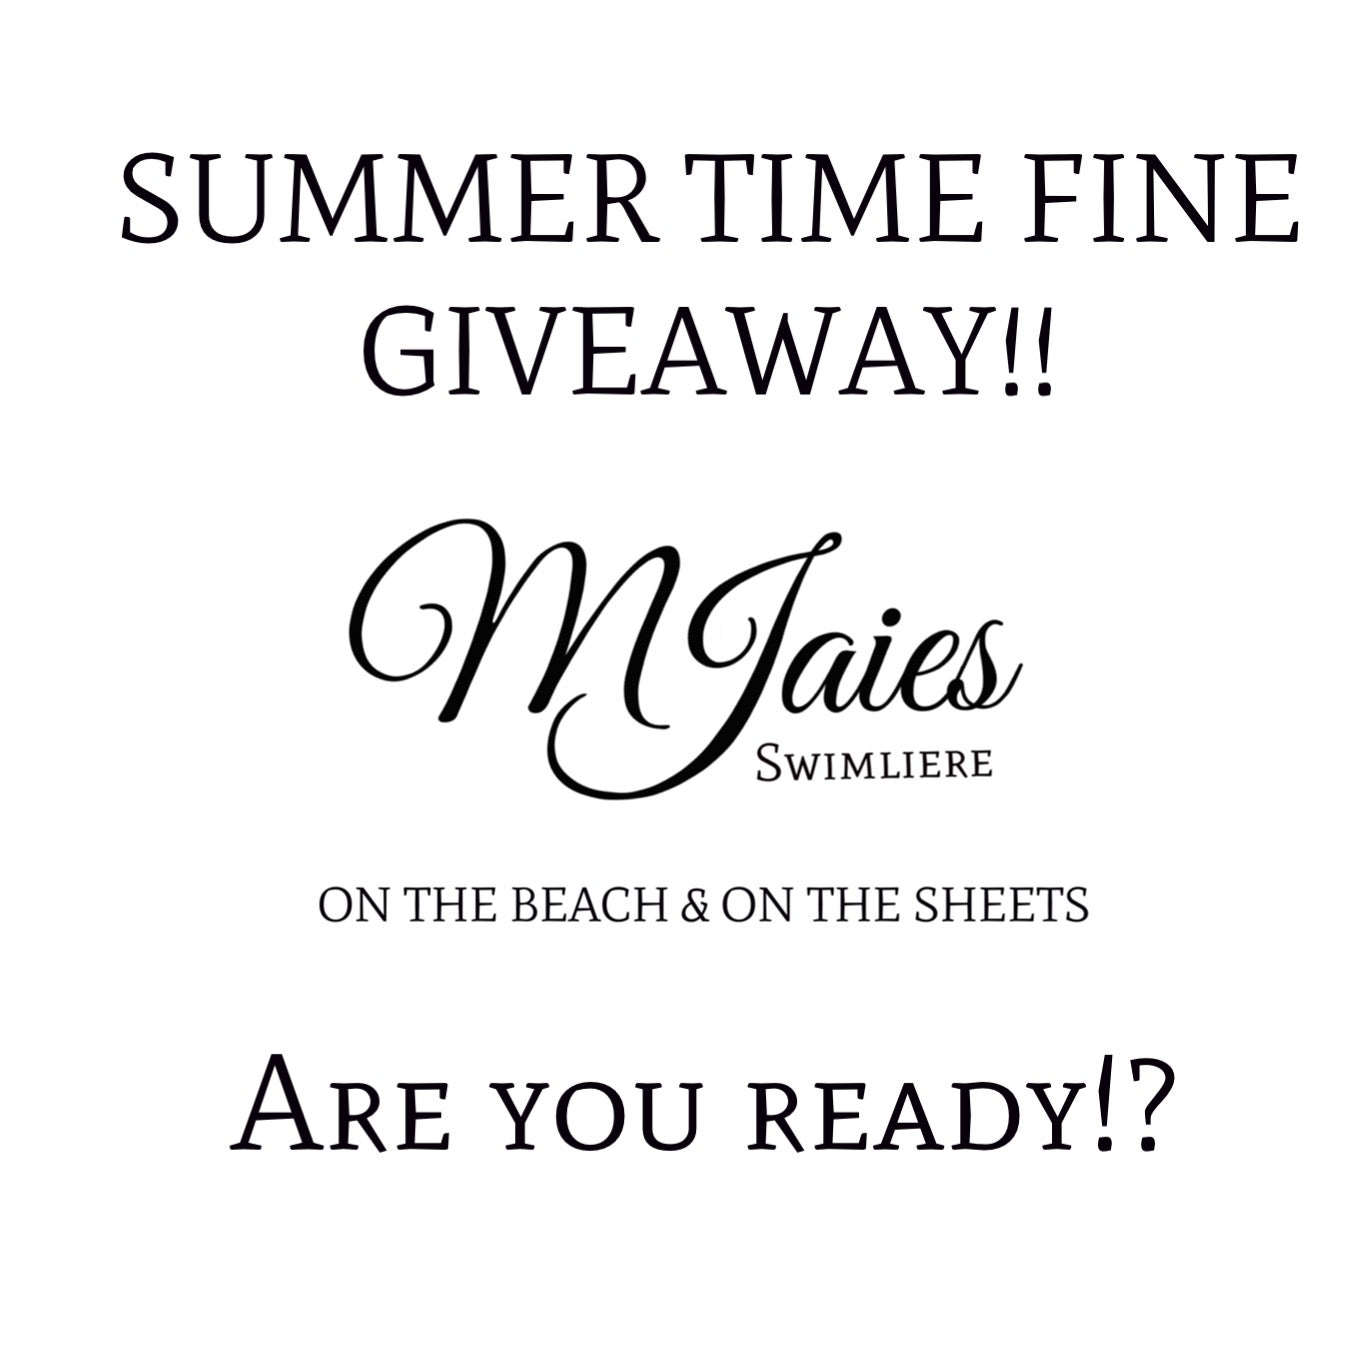 SUMMER TIME FINE GIVEAWAY!!